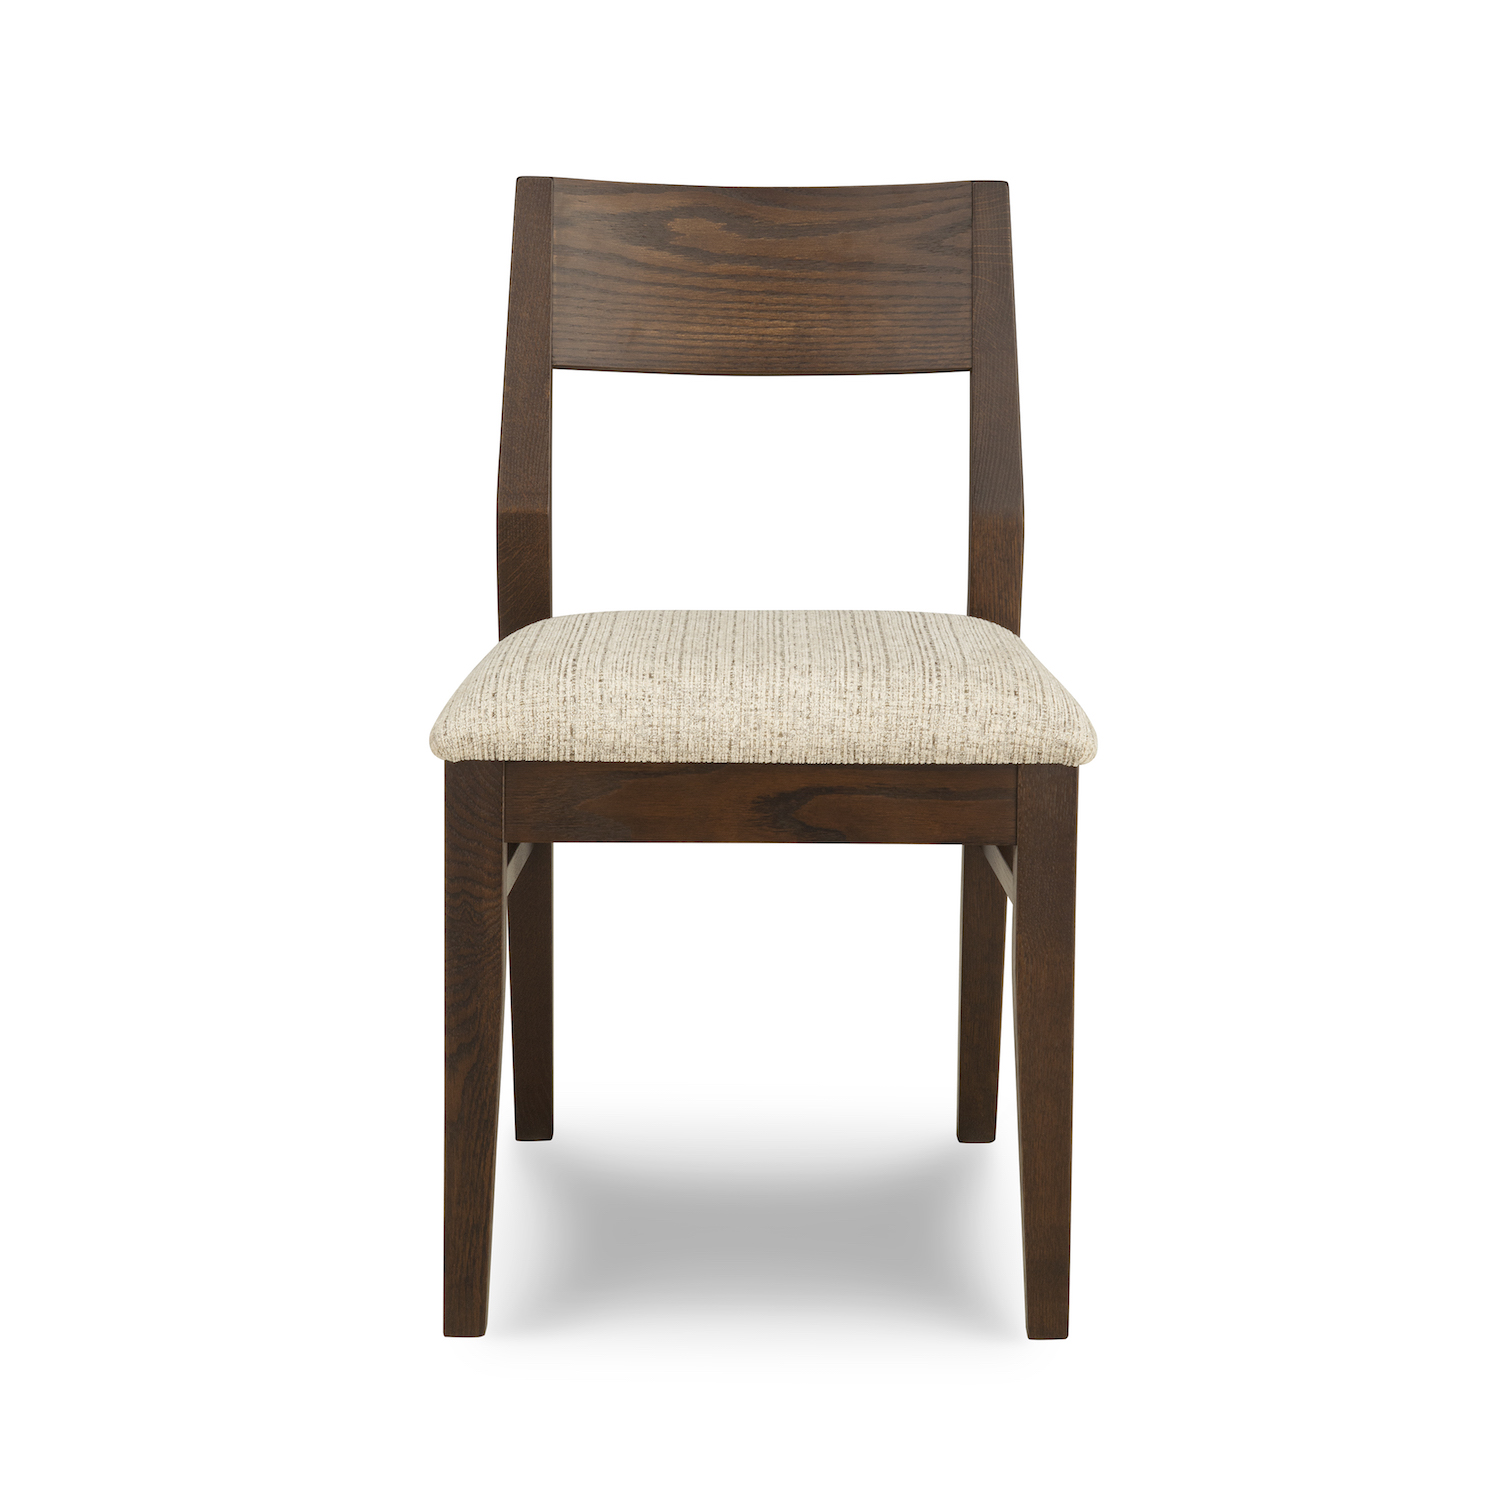 Sydney_Chair_Uph_Seat_Front_Straight-1-1.jpg